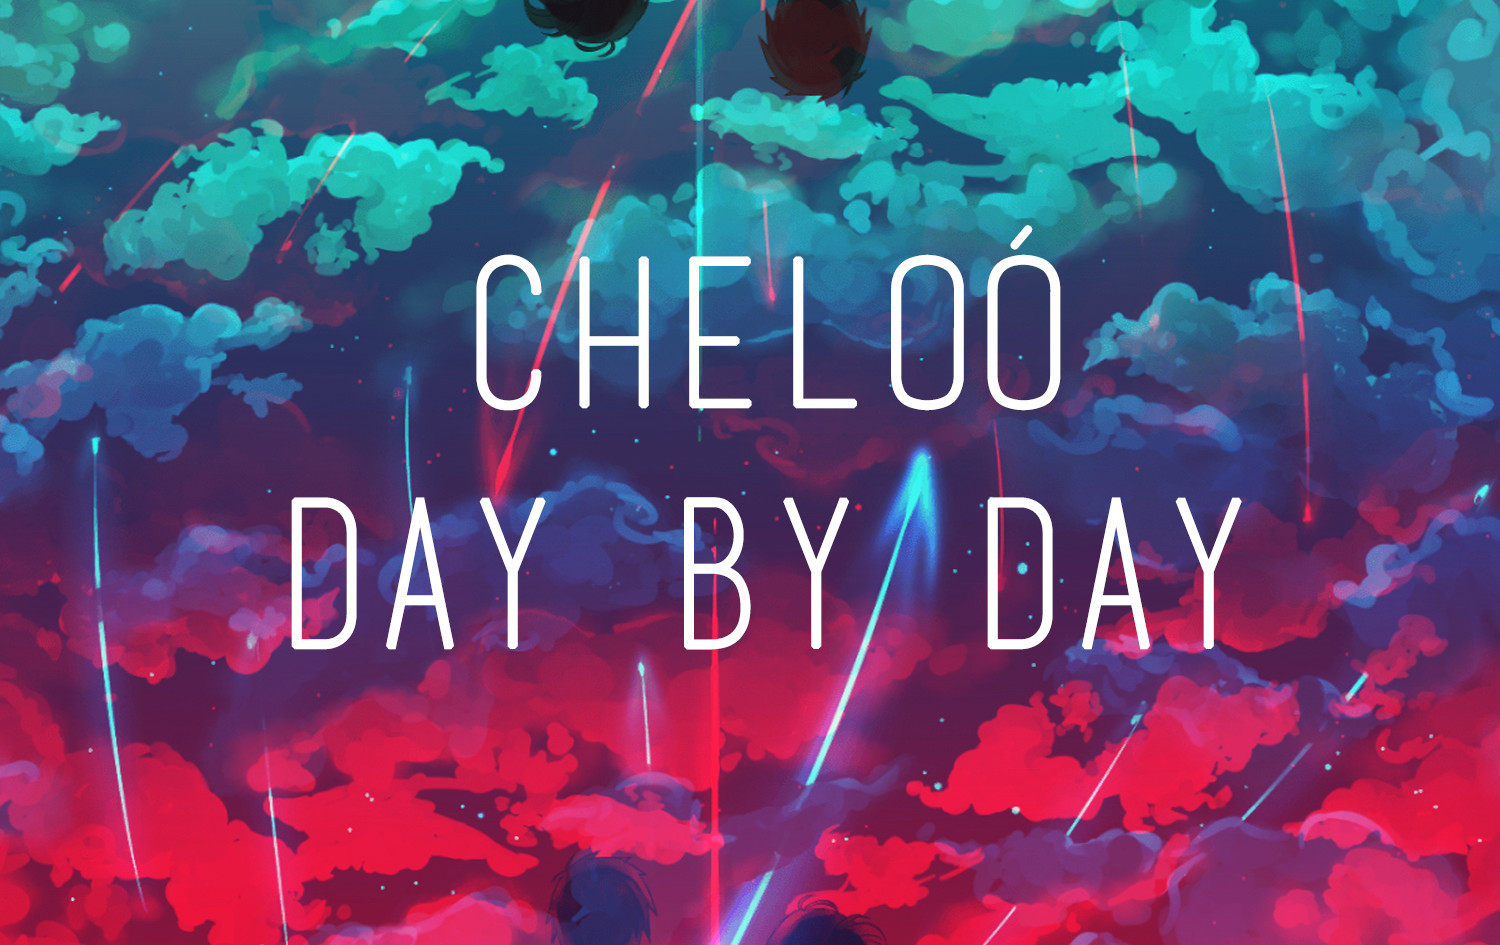 Cheloo - Day By Day